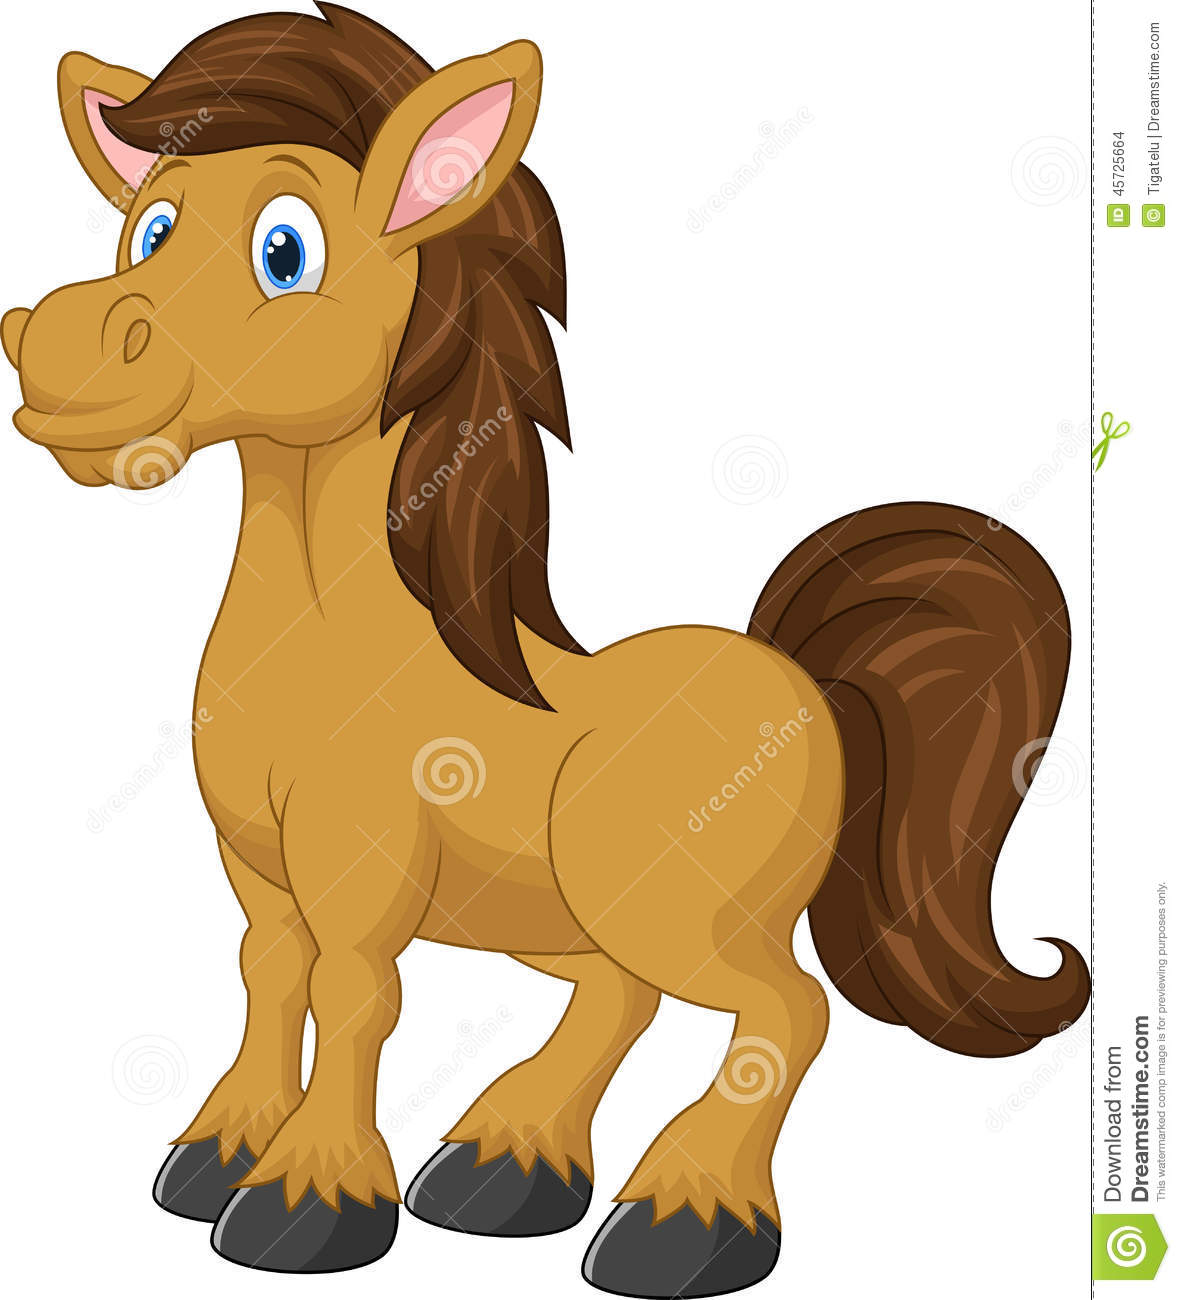 Cute Horse Cartoon Stock Vector - Image: 45725664